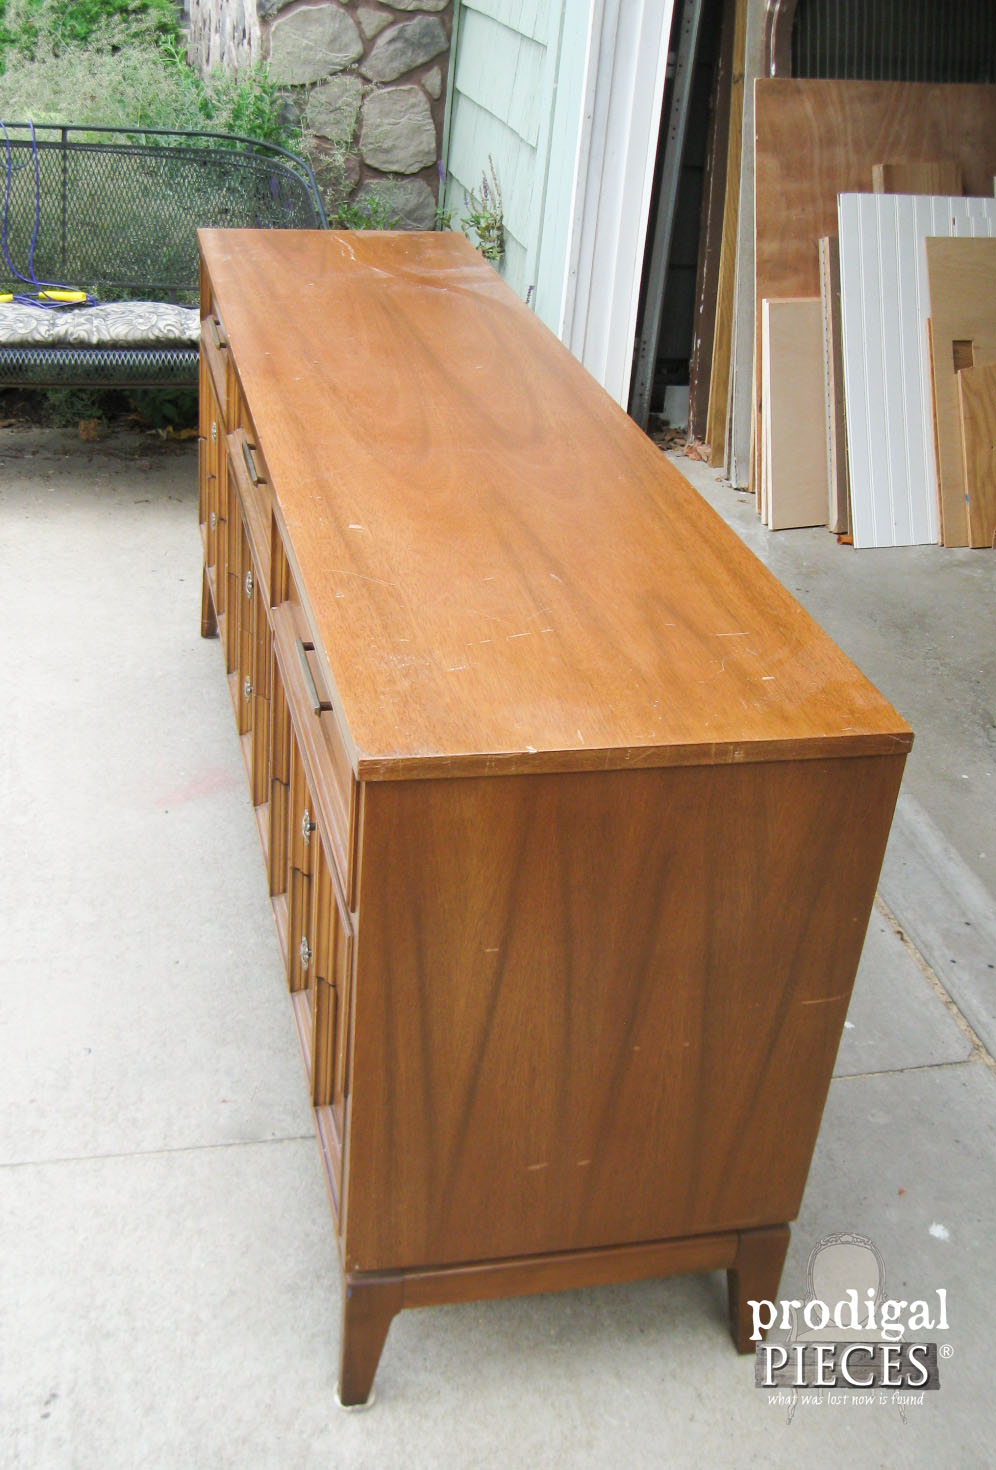 Vintage Dixie Dresser Credenza Before Factory Finish Makeover by Prodigal Pieces | www.prodigalpieces.com